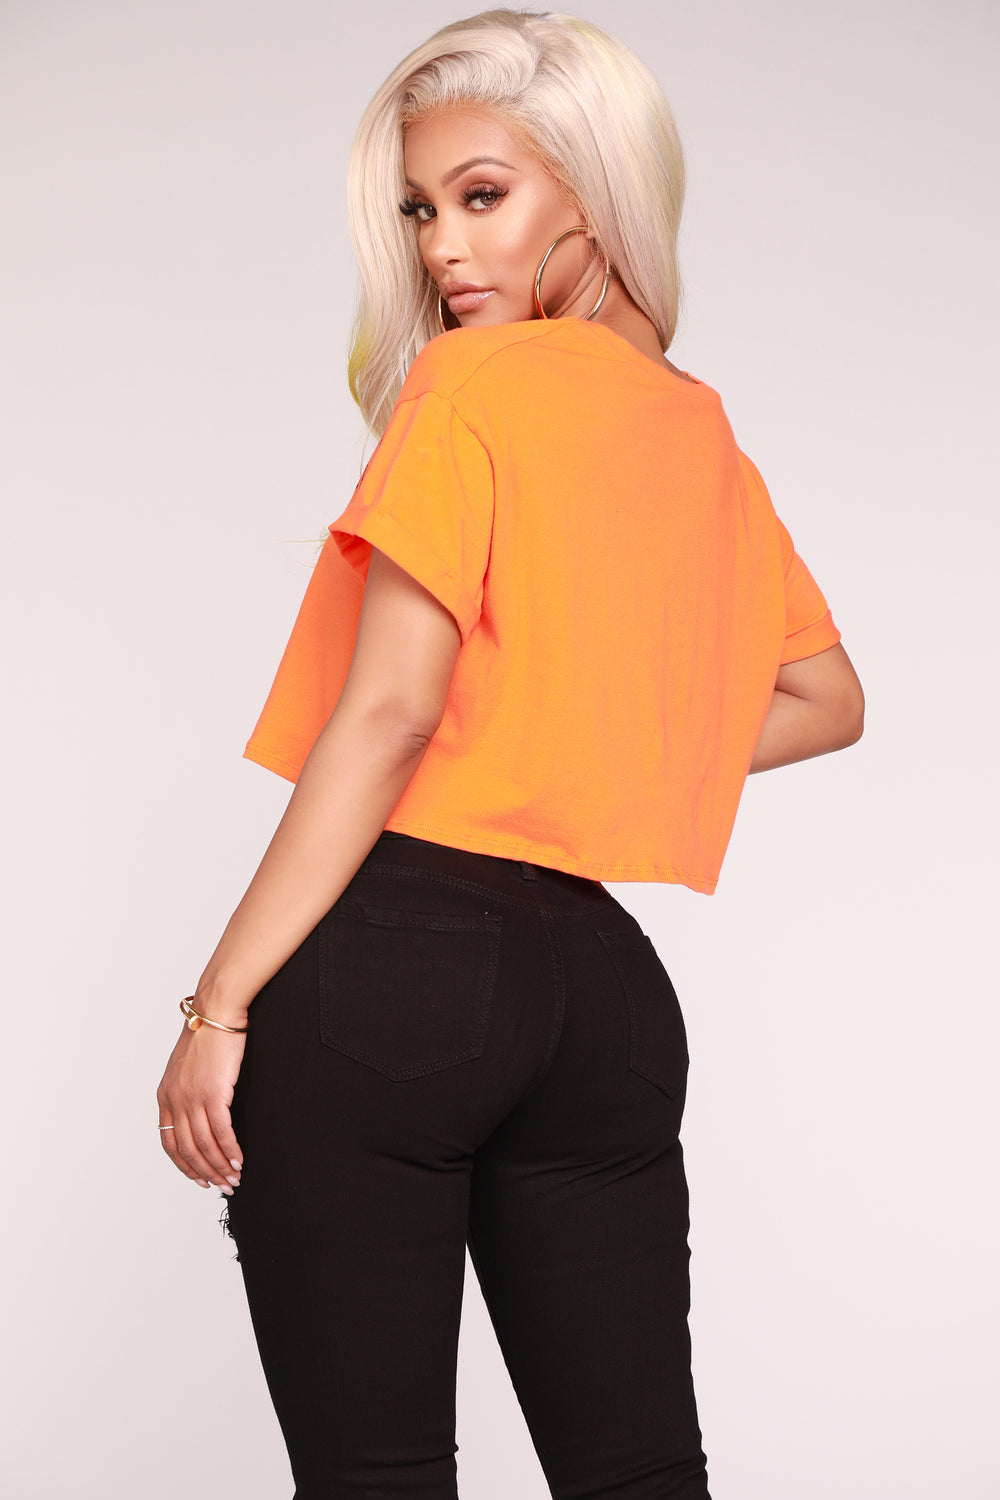 Your Competition Crop Top - Orange